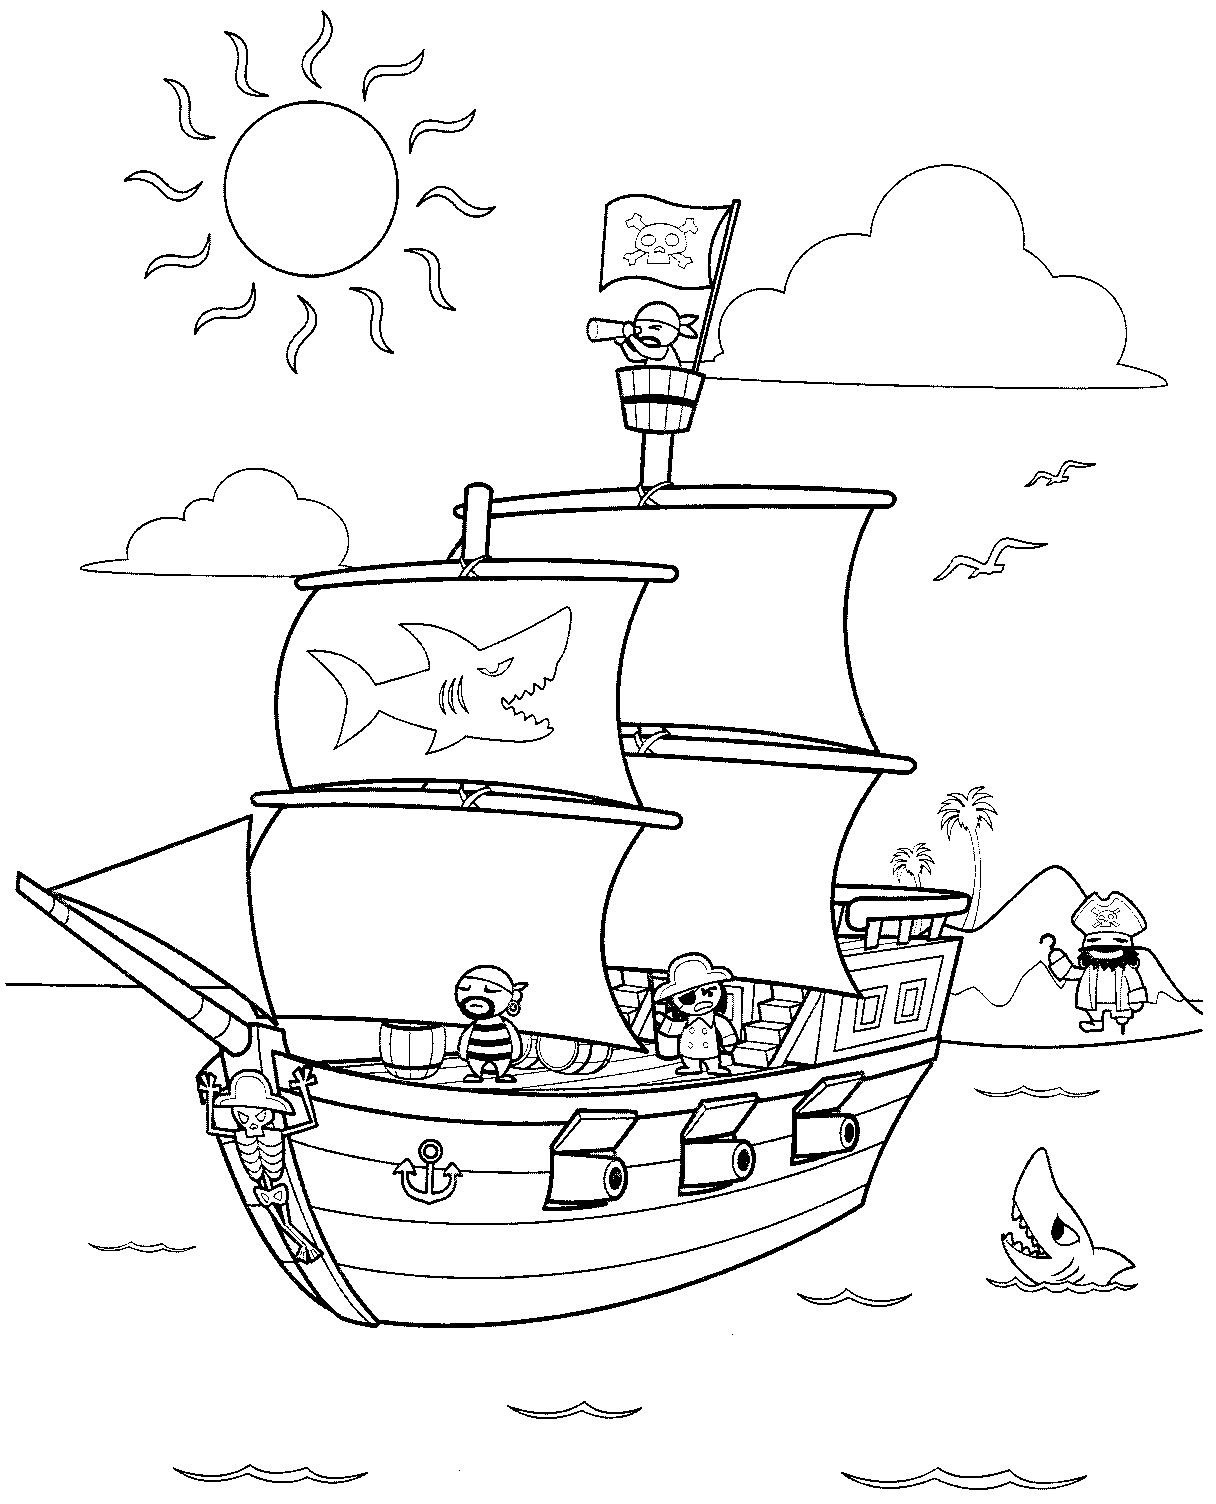 pirate coloring pages for kids printable pirate coloring pages to download and print for free pirate printable coloring kids for pages